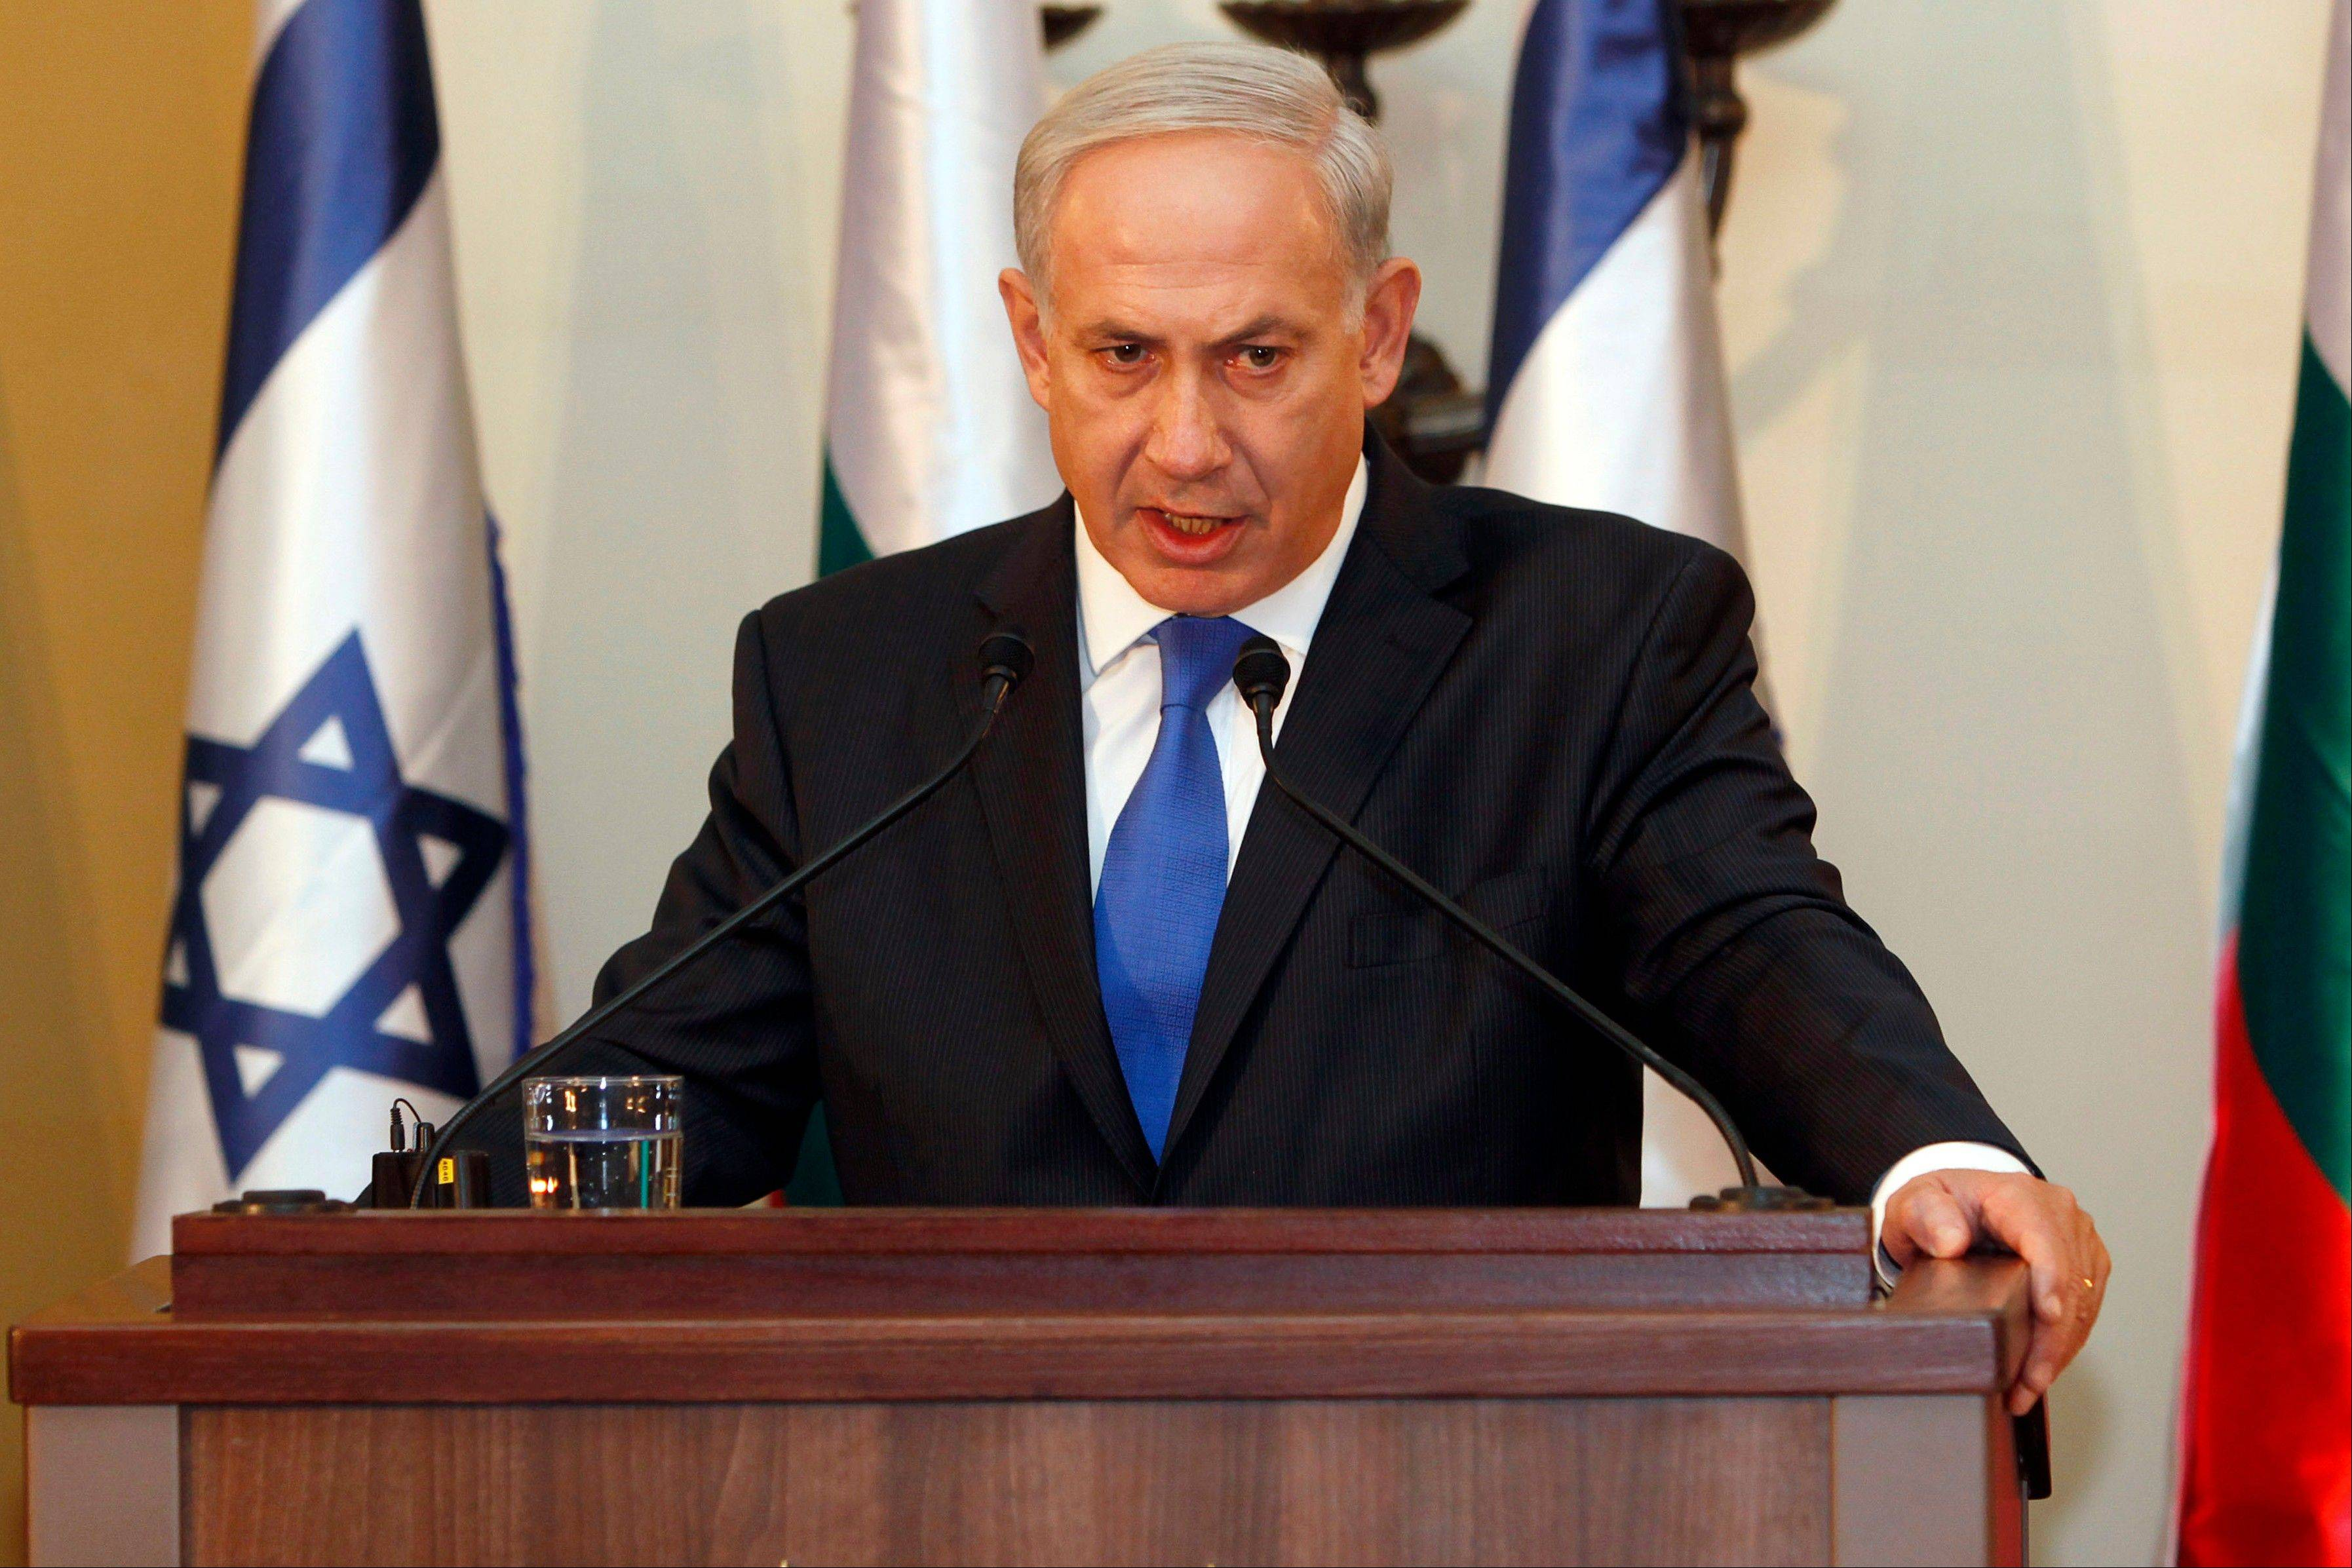 Israeli Prime Minister Benjamin Netanyahu heads to the United Nations this week with a single item on his agenda: Iran. Netanyahu is convinced the Islamic Republic isn't taking American vows to block it from acquiring nuclear weapons seriously and that time is quickly running out to stop them.